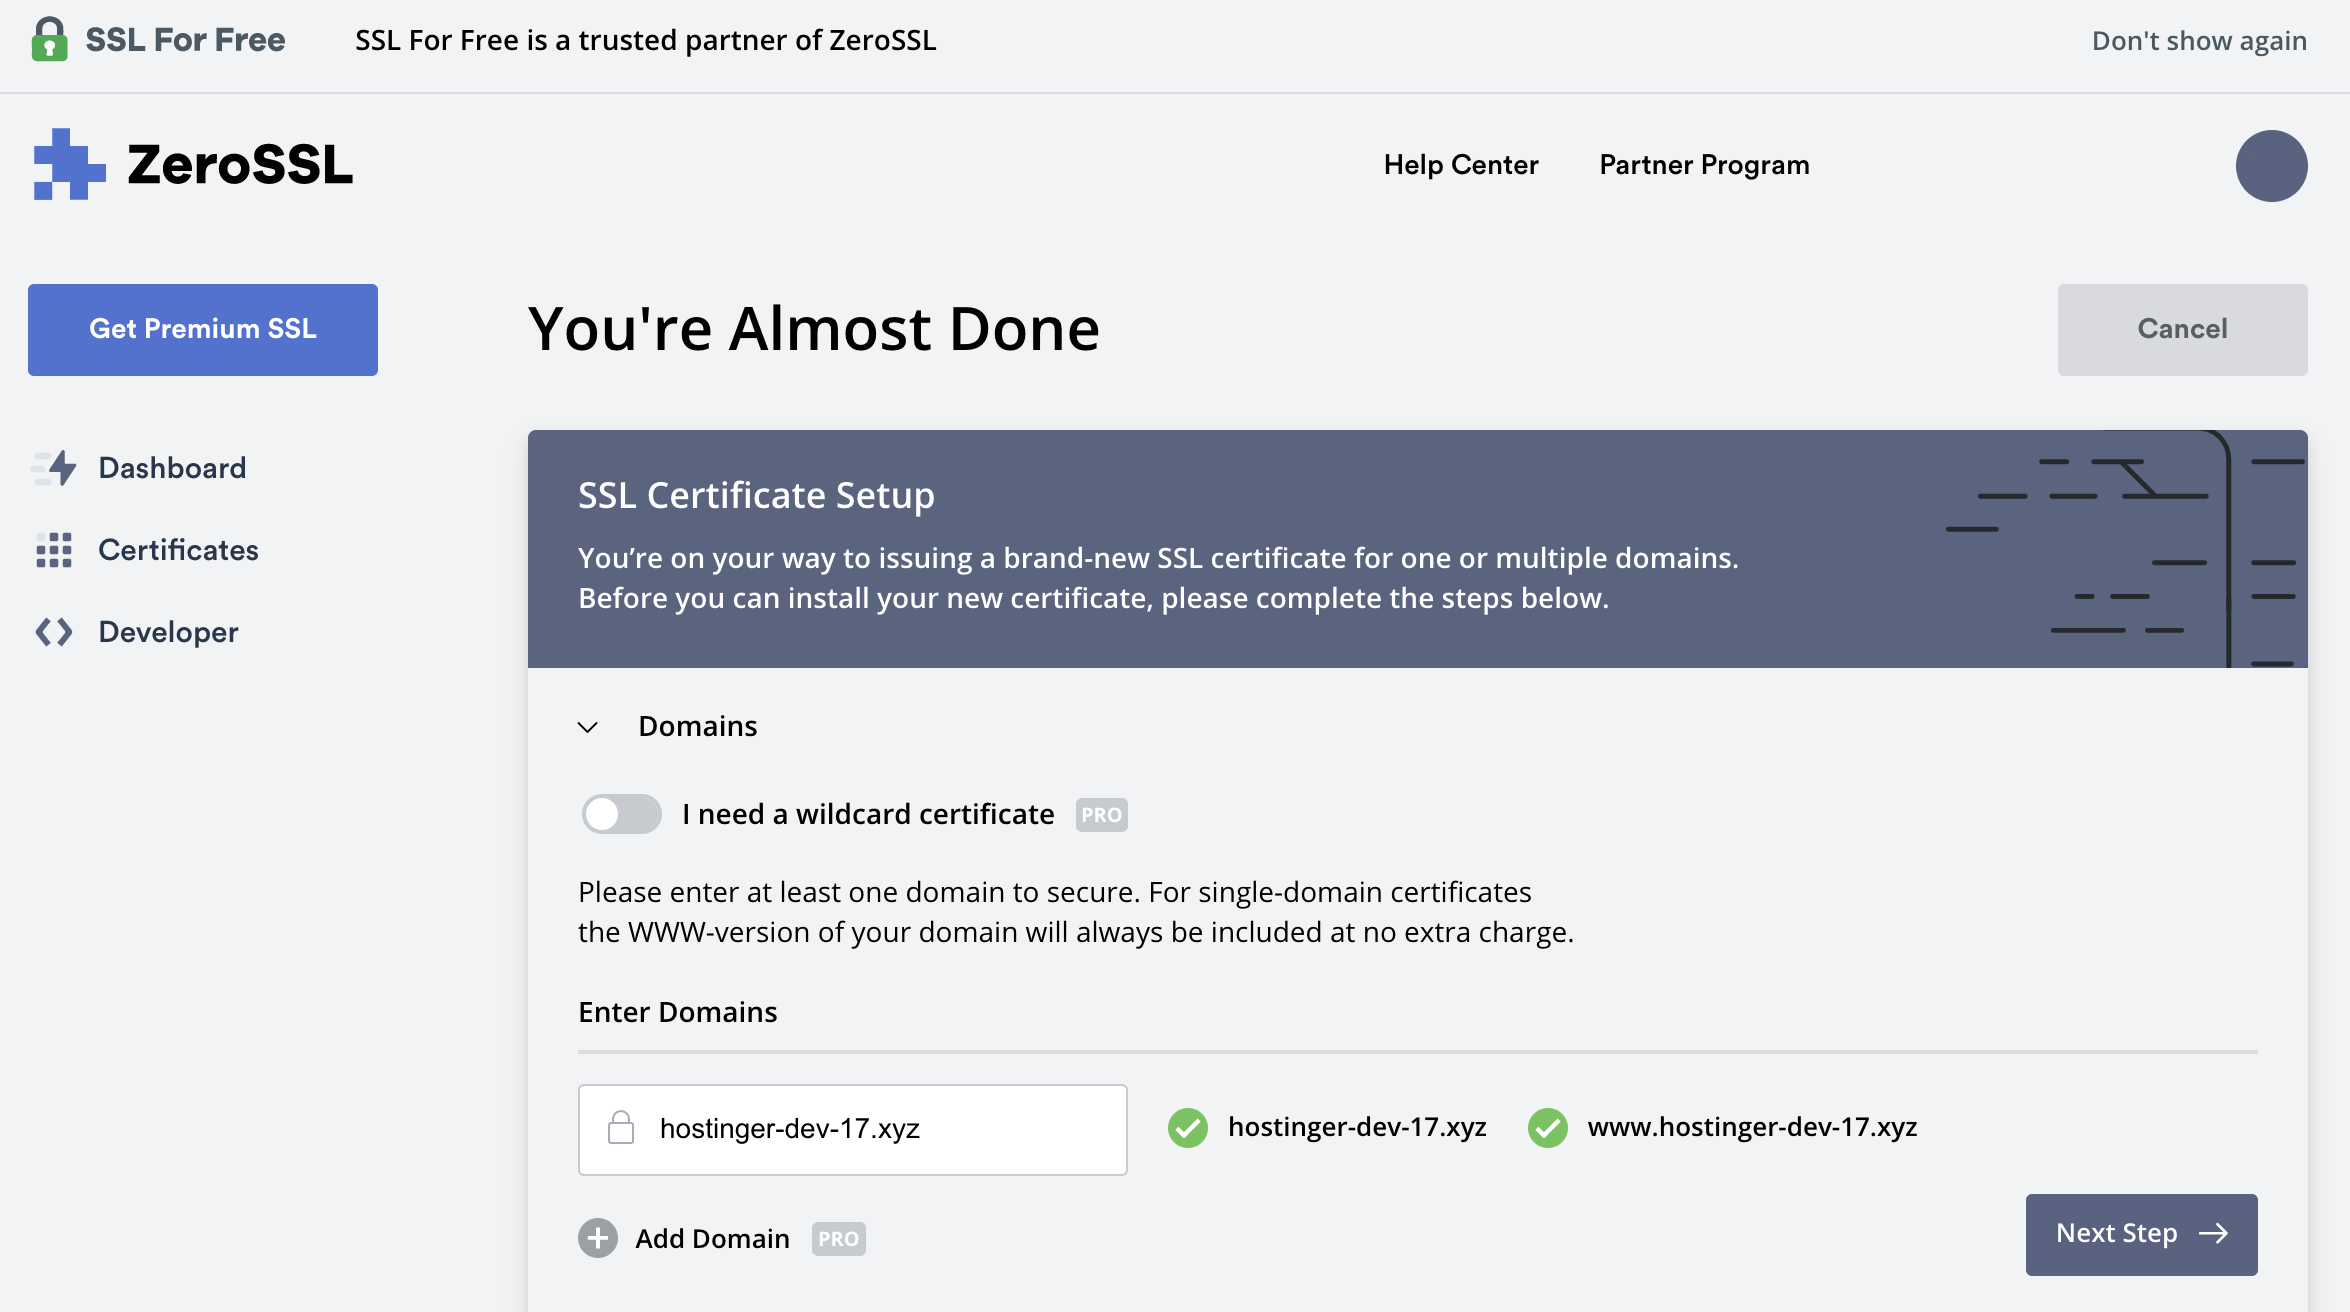 First step in registering for a free ssl certificate